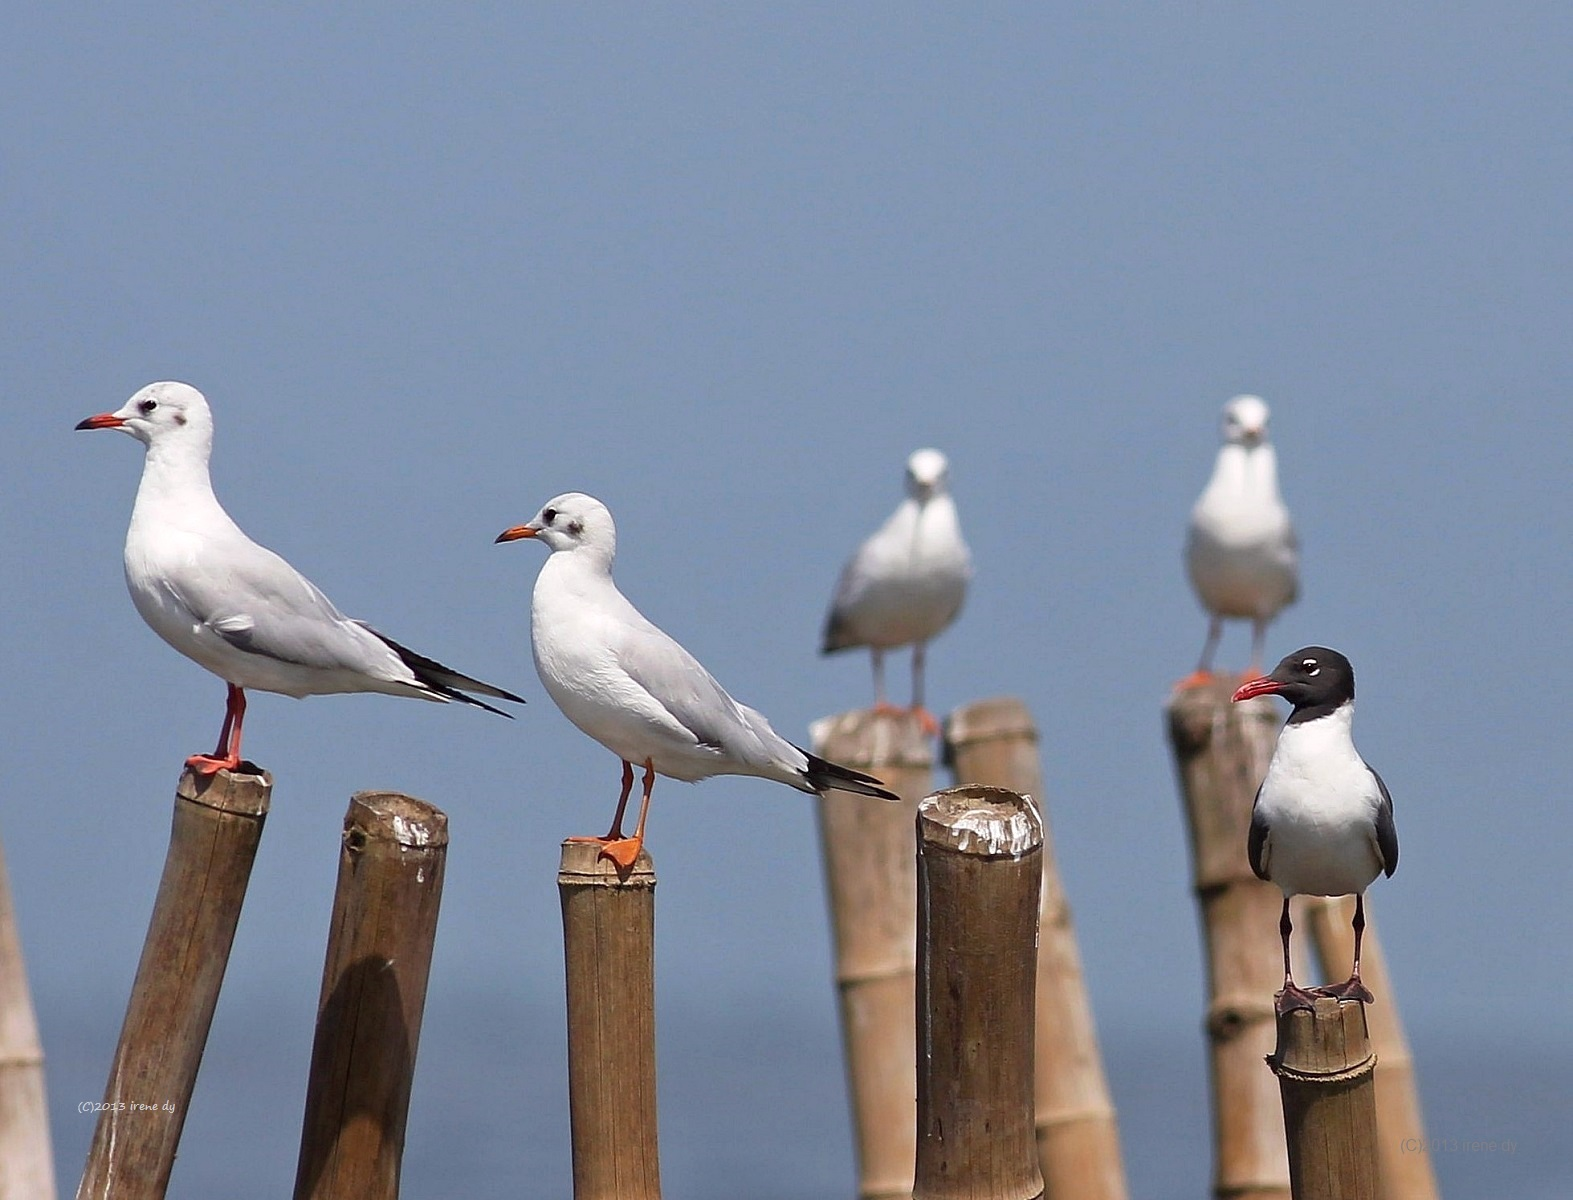 Laughing Gull (far right) among Black-headed Gulls in Balanga, Bataan.